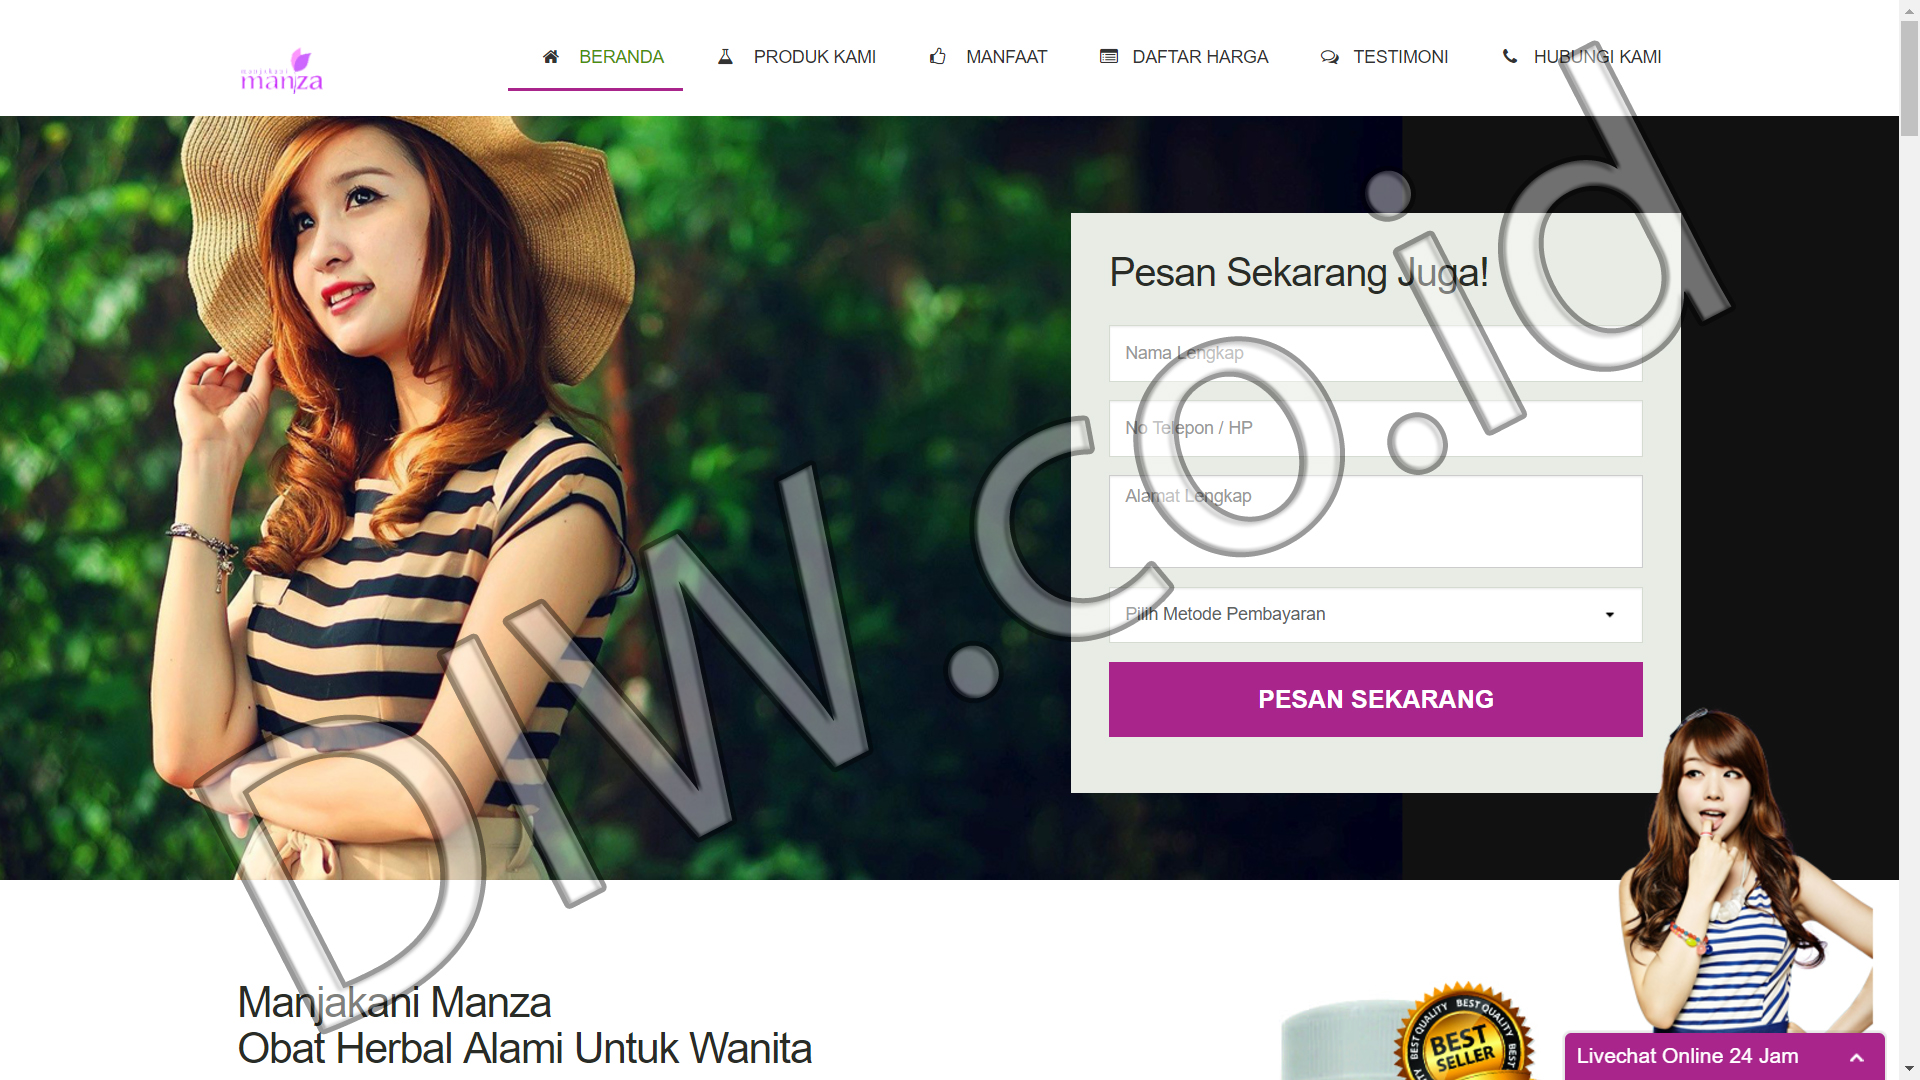 Portfolio 1 - Manjakani Manza - Andri Sunardi - Freelancer - Web Developer - CEO DIW.co.id